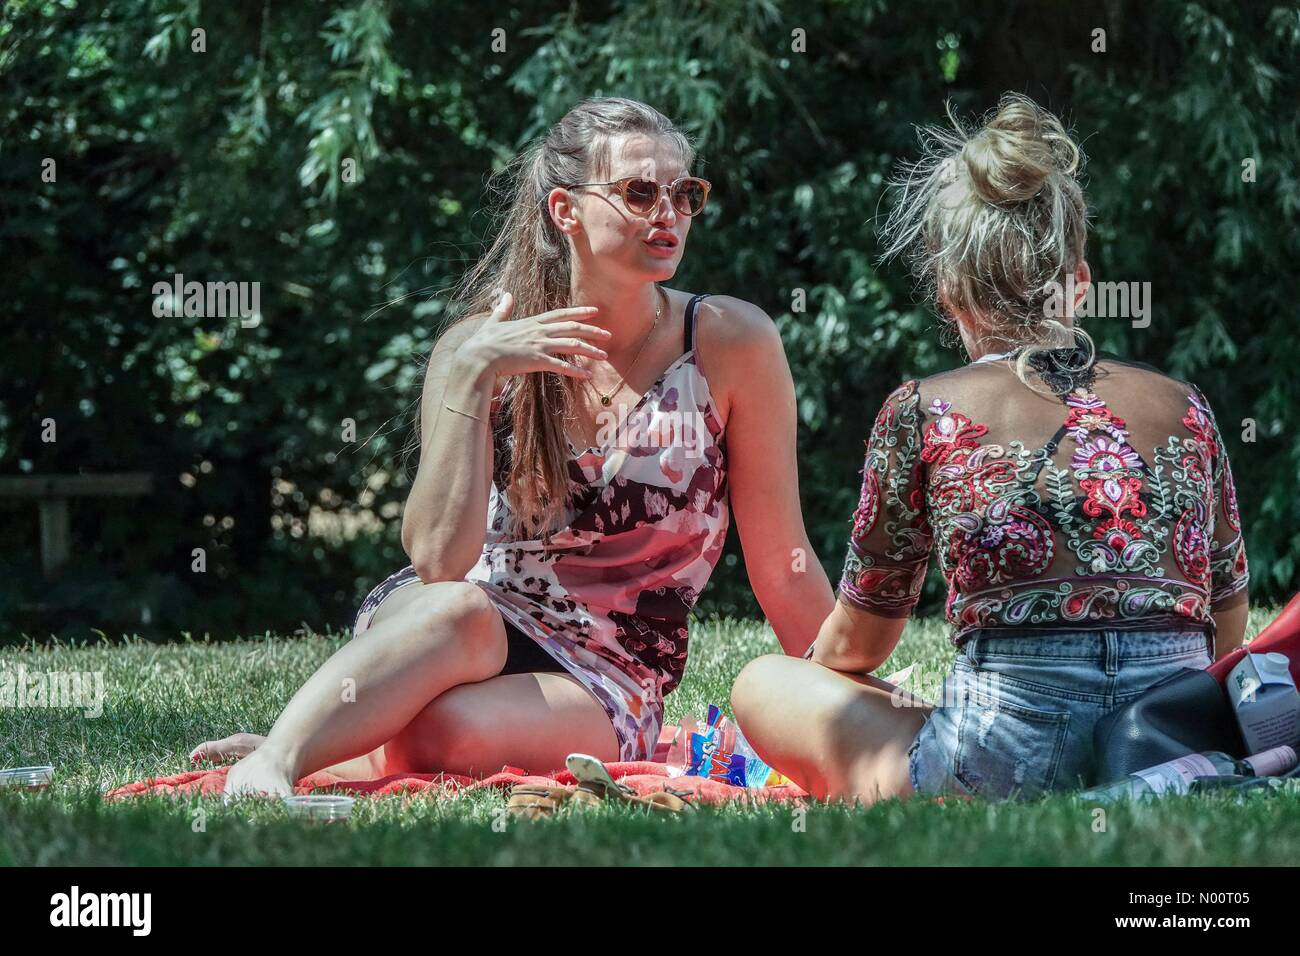 Guildford, UK. 1st Jul, 2018. UK Weather: Sunny in Guildford. Flower Walk, Guildford. 01st July 2018. Hot and sunny weather across the Home Counties today. People enjoying the River Wey in Guildford, Surrey. Credit: jamesjagger/StockimoNews/Alamy Live News Stock Photo